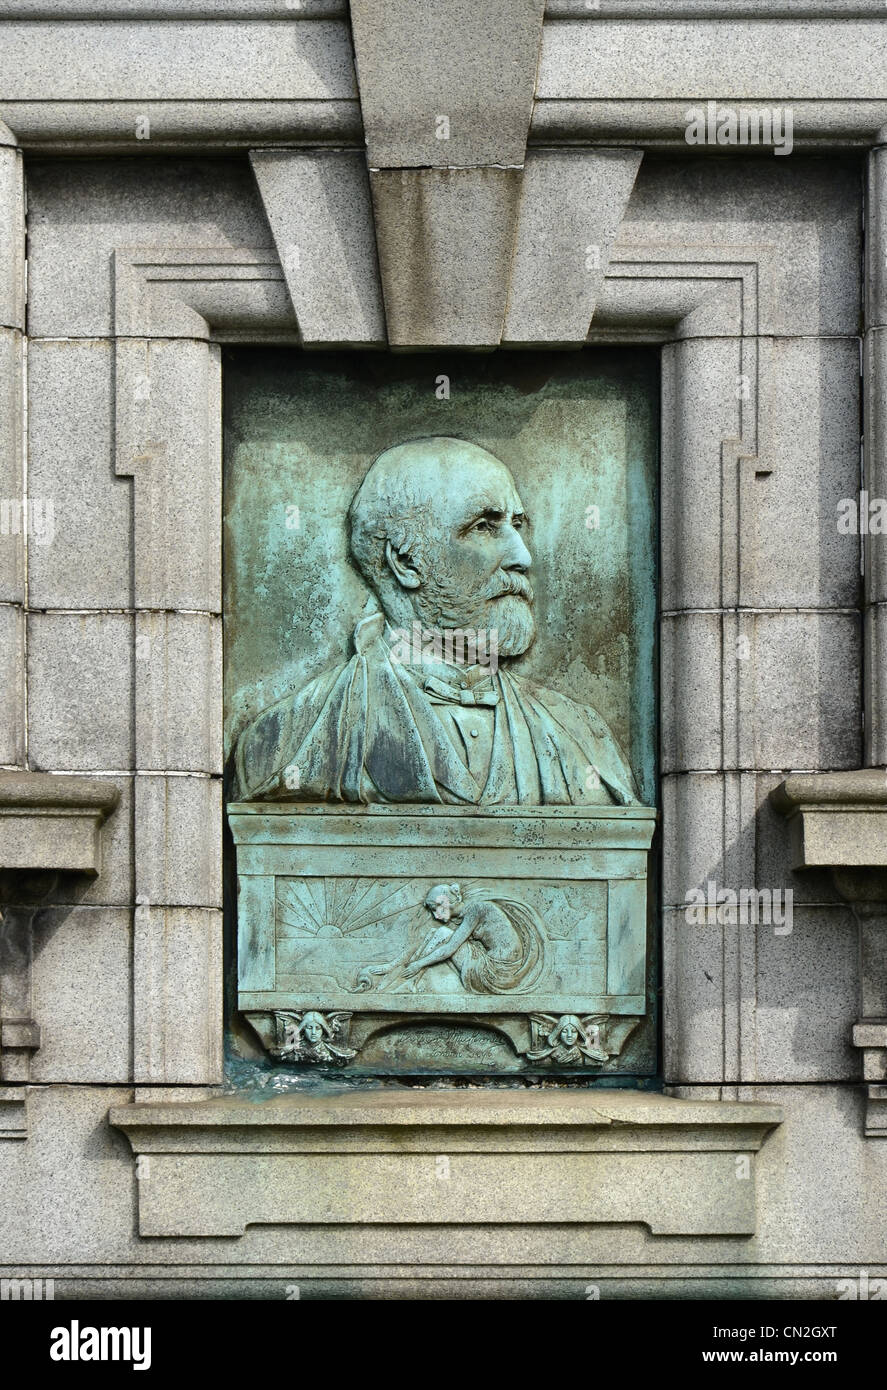 The art nouveau portrait panel on the tomb of Walter MacFarlane of the Saracen Foundry at the Glasgow Necropolis. - Stock Image